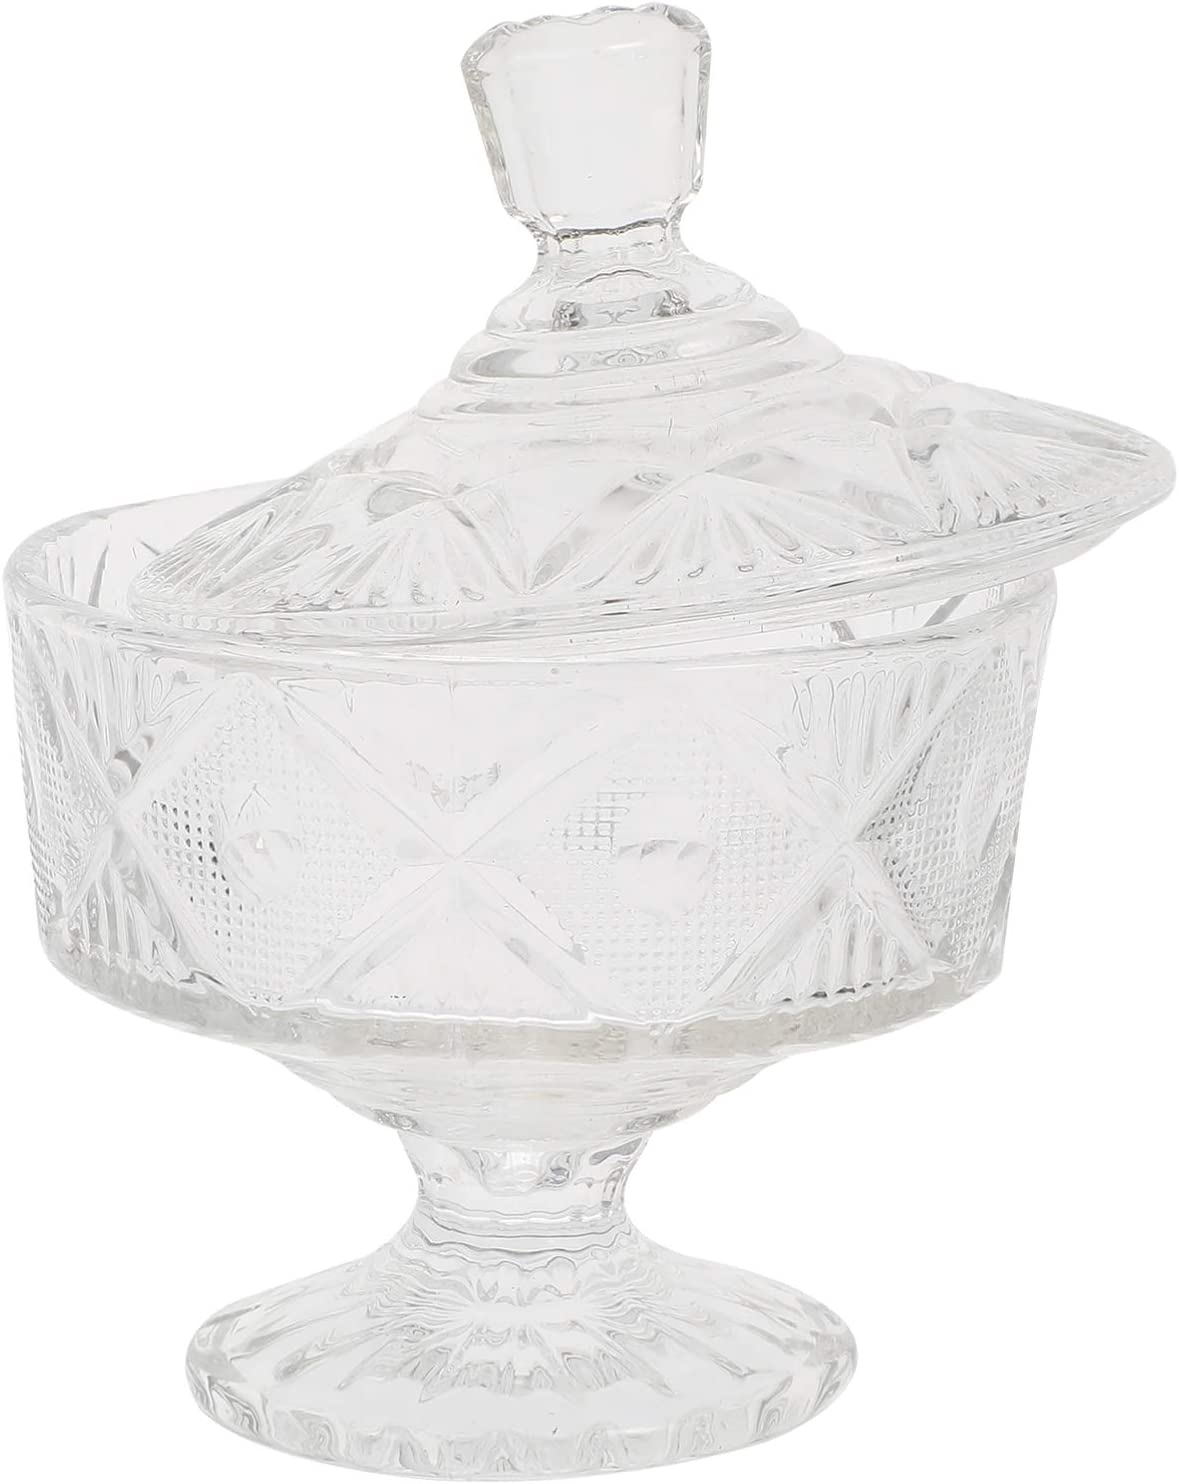 Max 60% OFF DOITOOL Transparent Glass Columbus Mall Candy Dish Lid Decorative with B